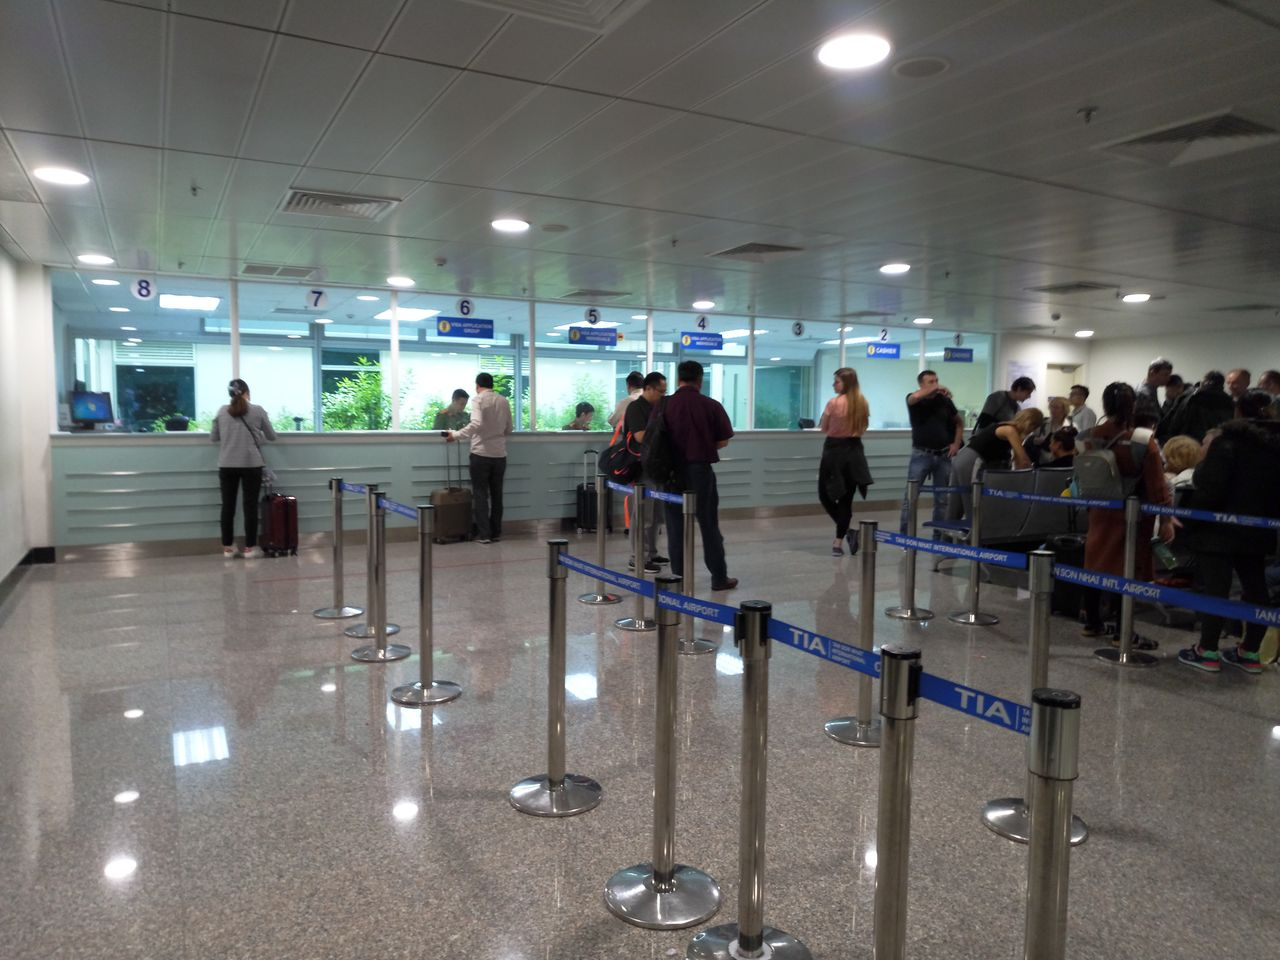 Getting a visa at the airport of Vietnam (Ho Chi Minh)